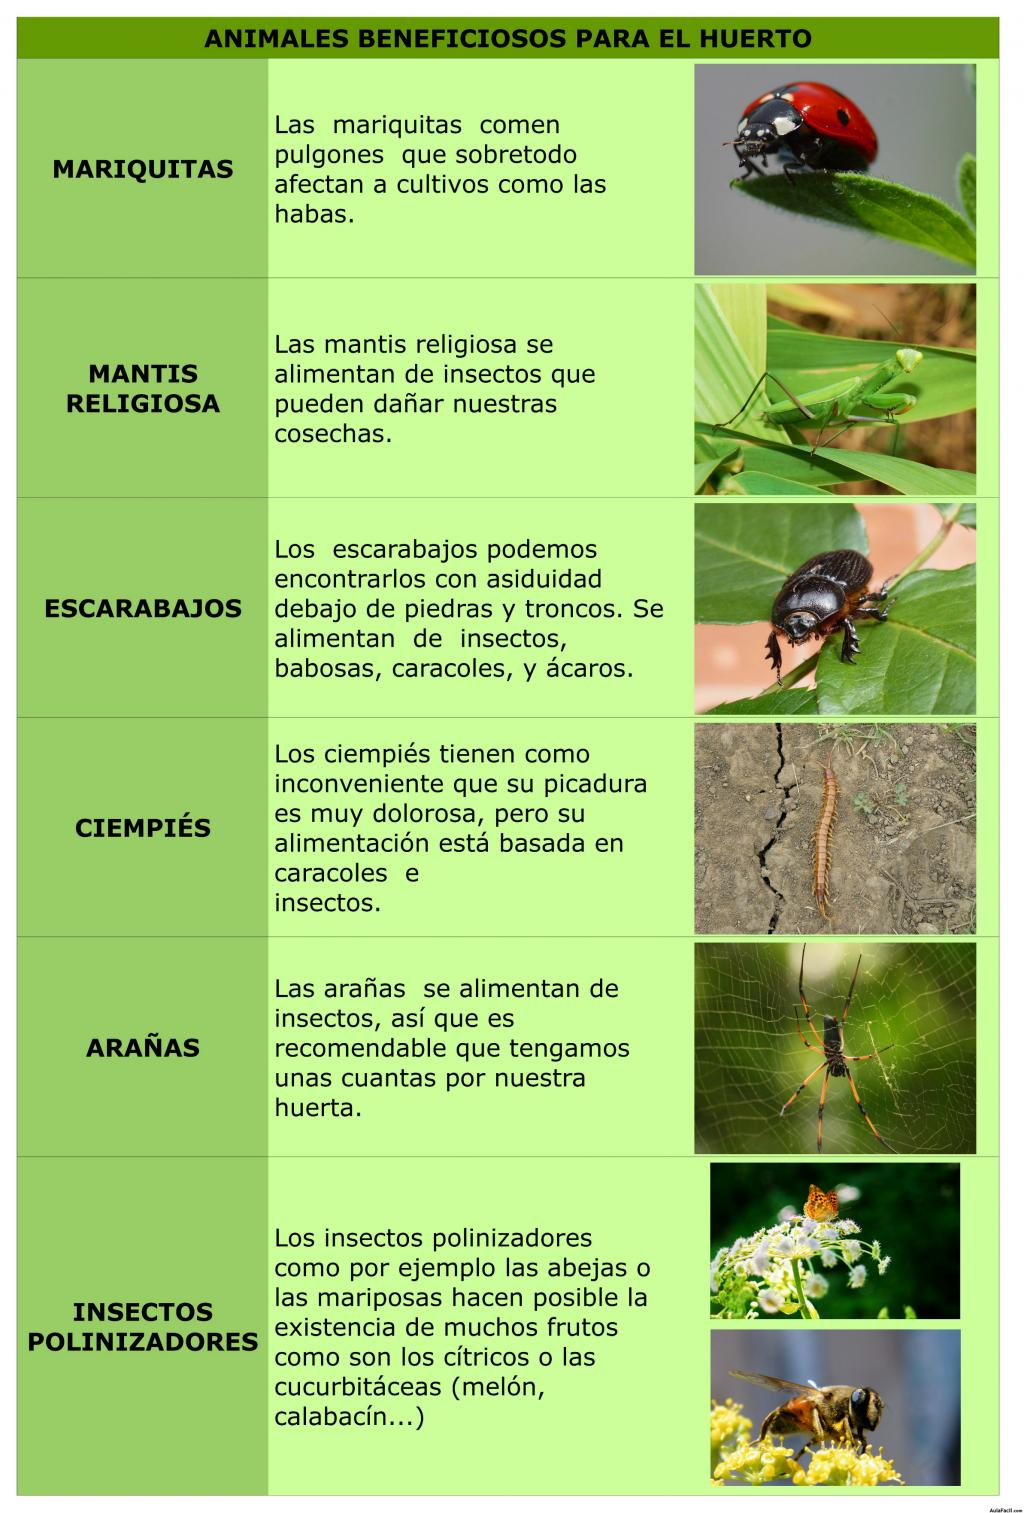 Animales beneficiosos